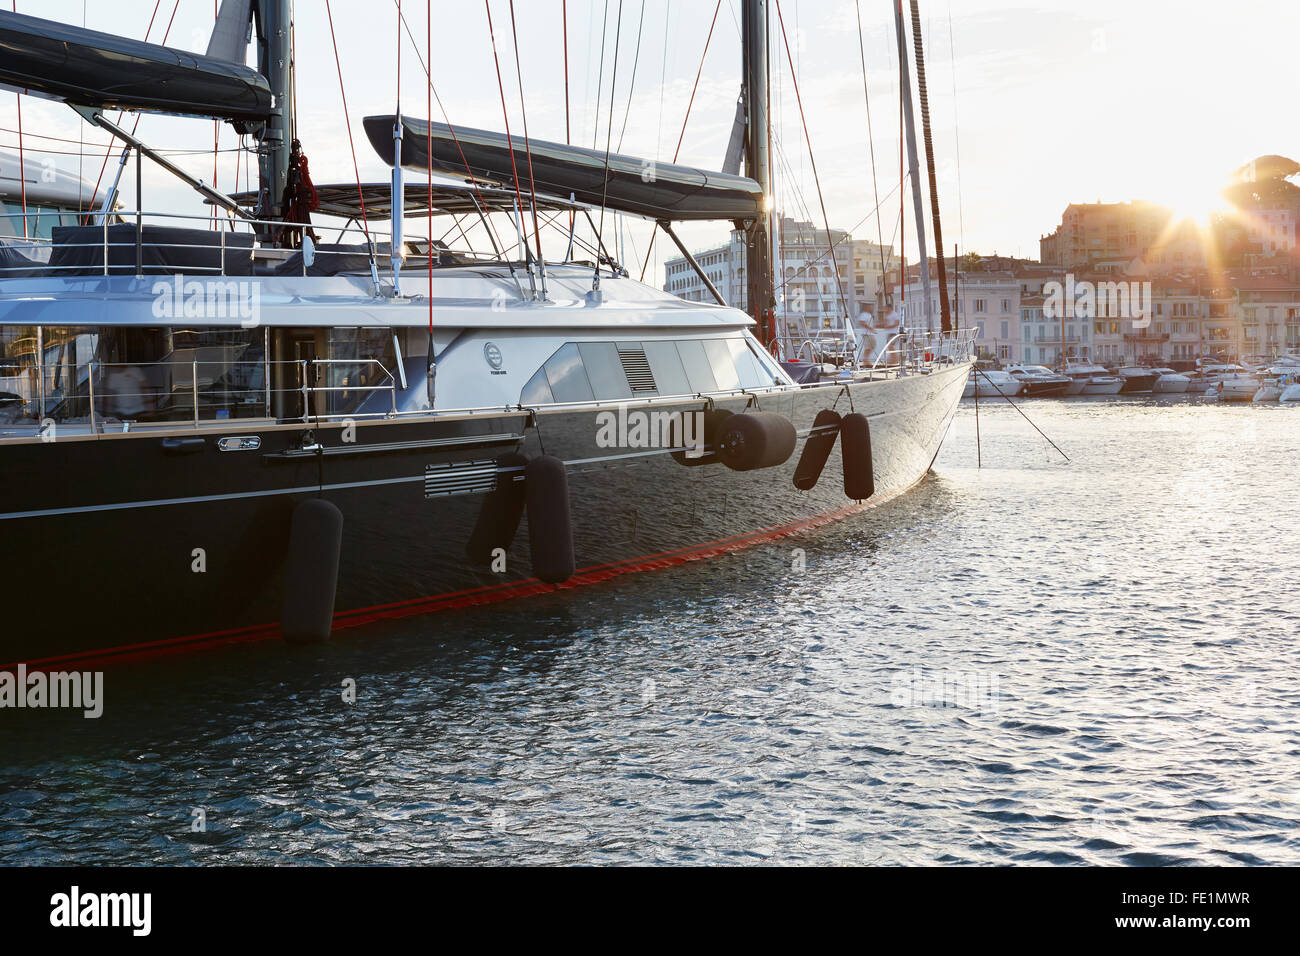 Modern black an red sail boat by Perini navi seen in the harbor in the sunset light, Cannes - Stock Image